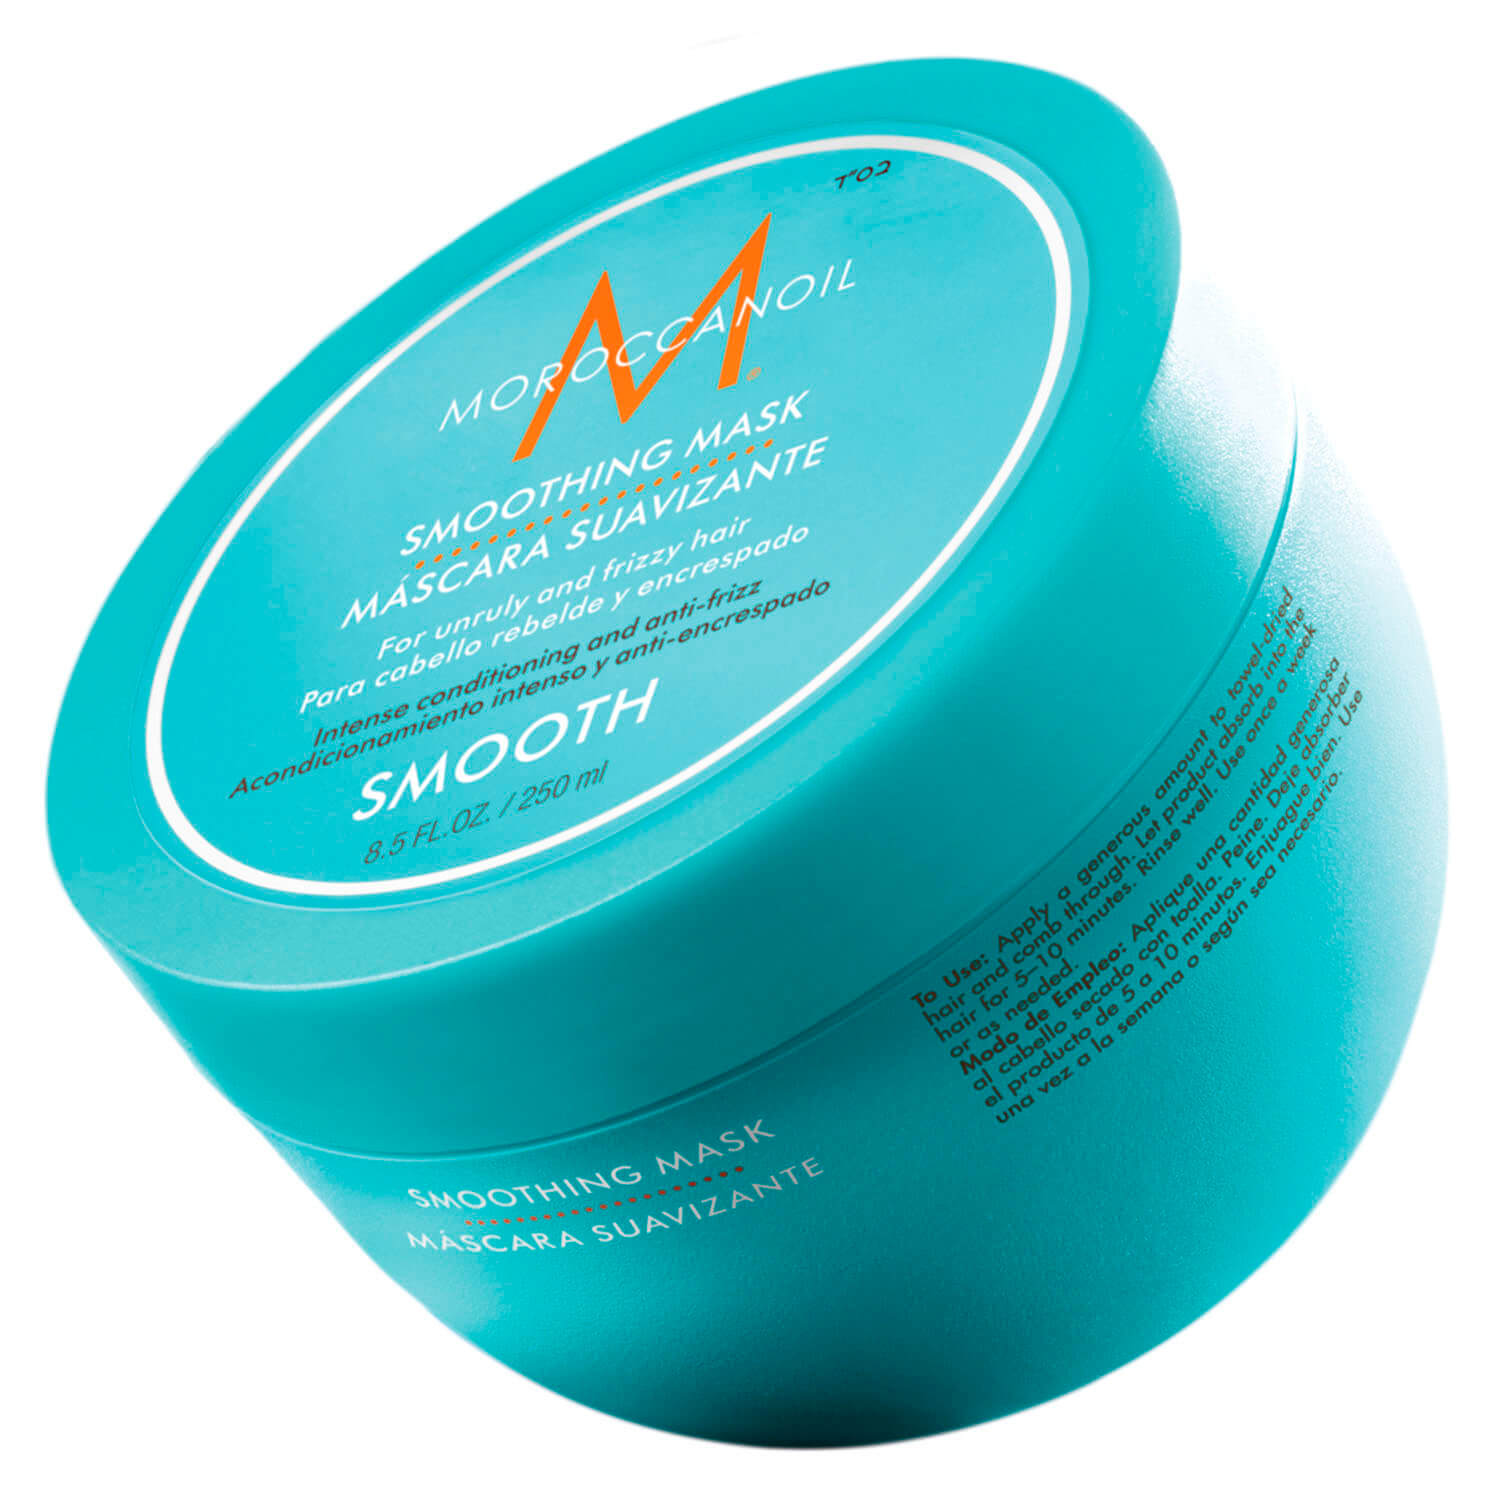 Moroccanoil - Smoothing Mask - 250ml